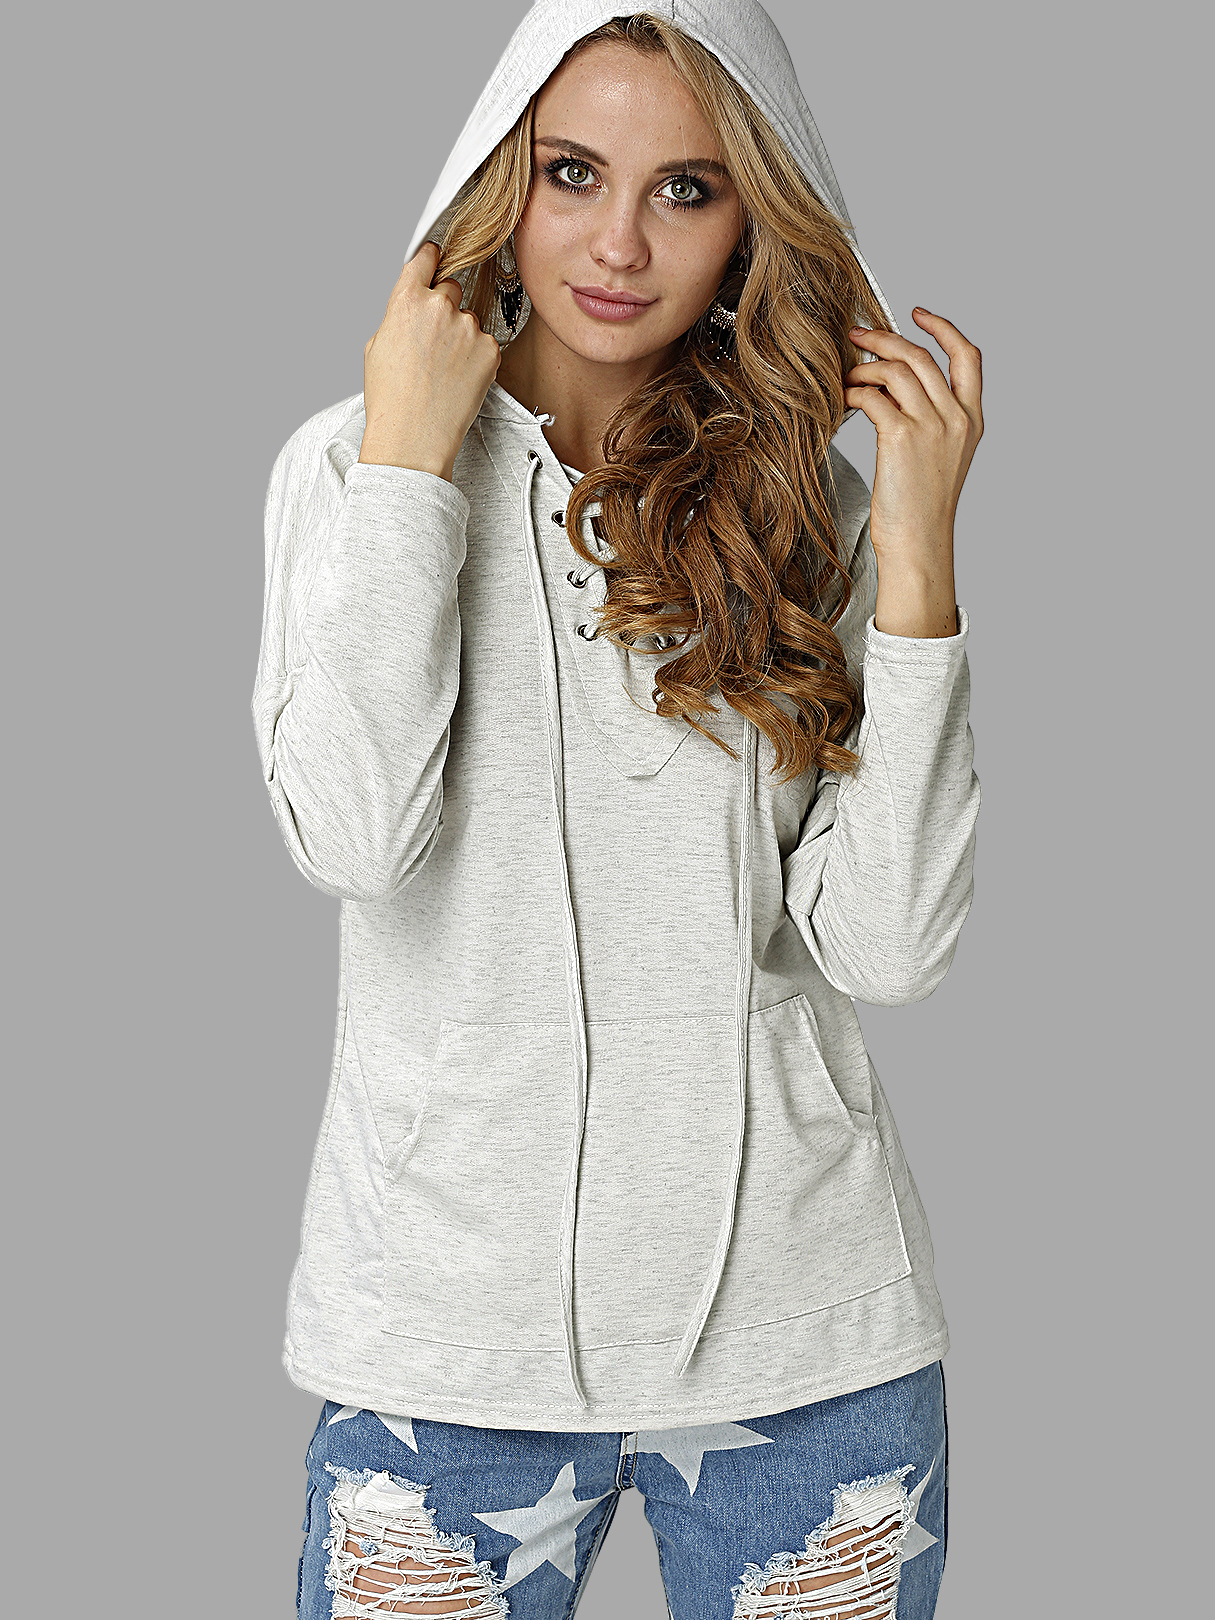 Light Grey V Neck Lace-up Pocket Front Hooded Sweatshirt grey layered contrast color hooded strappy front sweatshirt